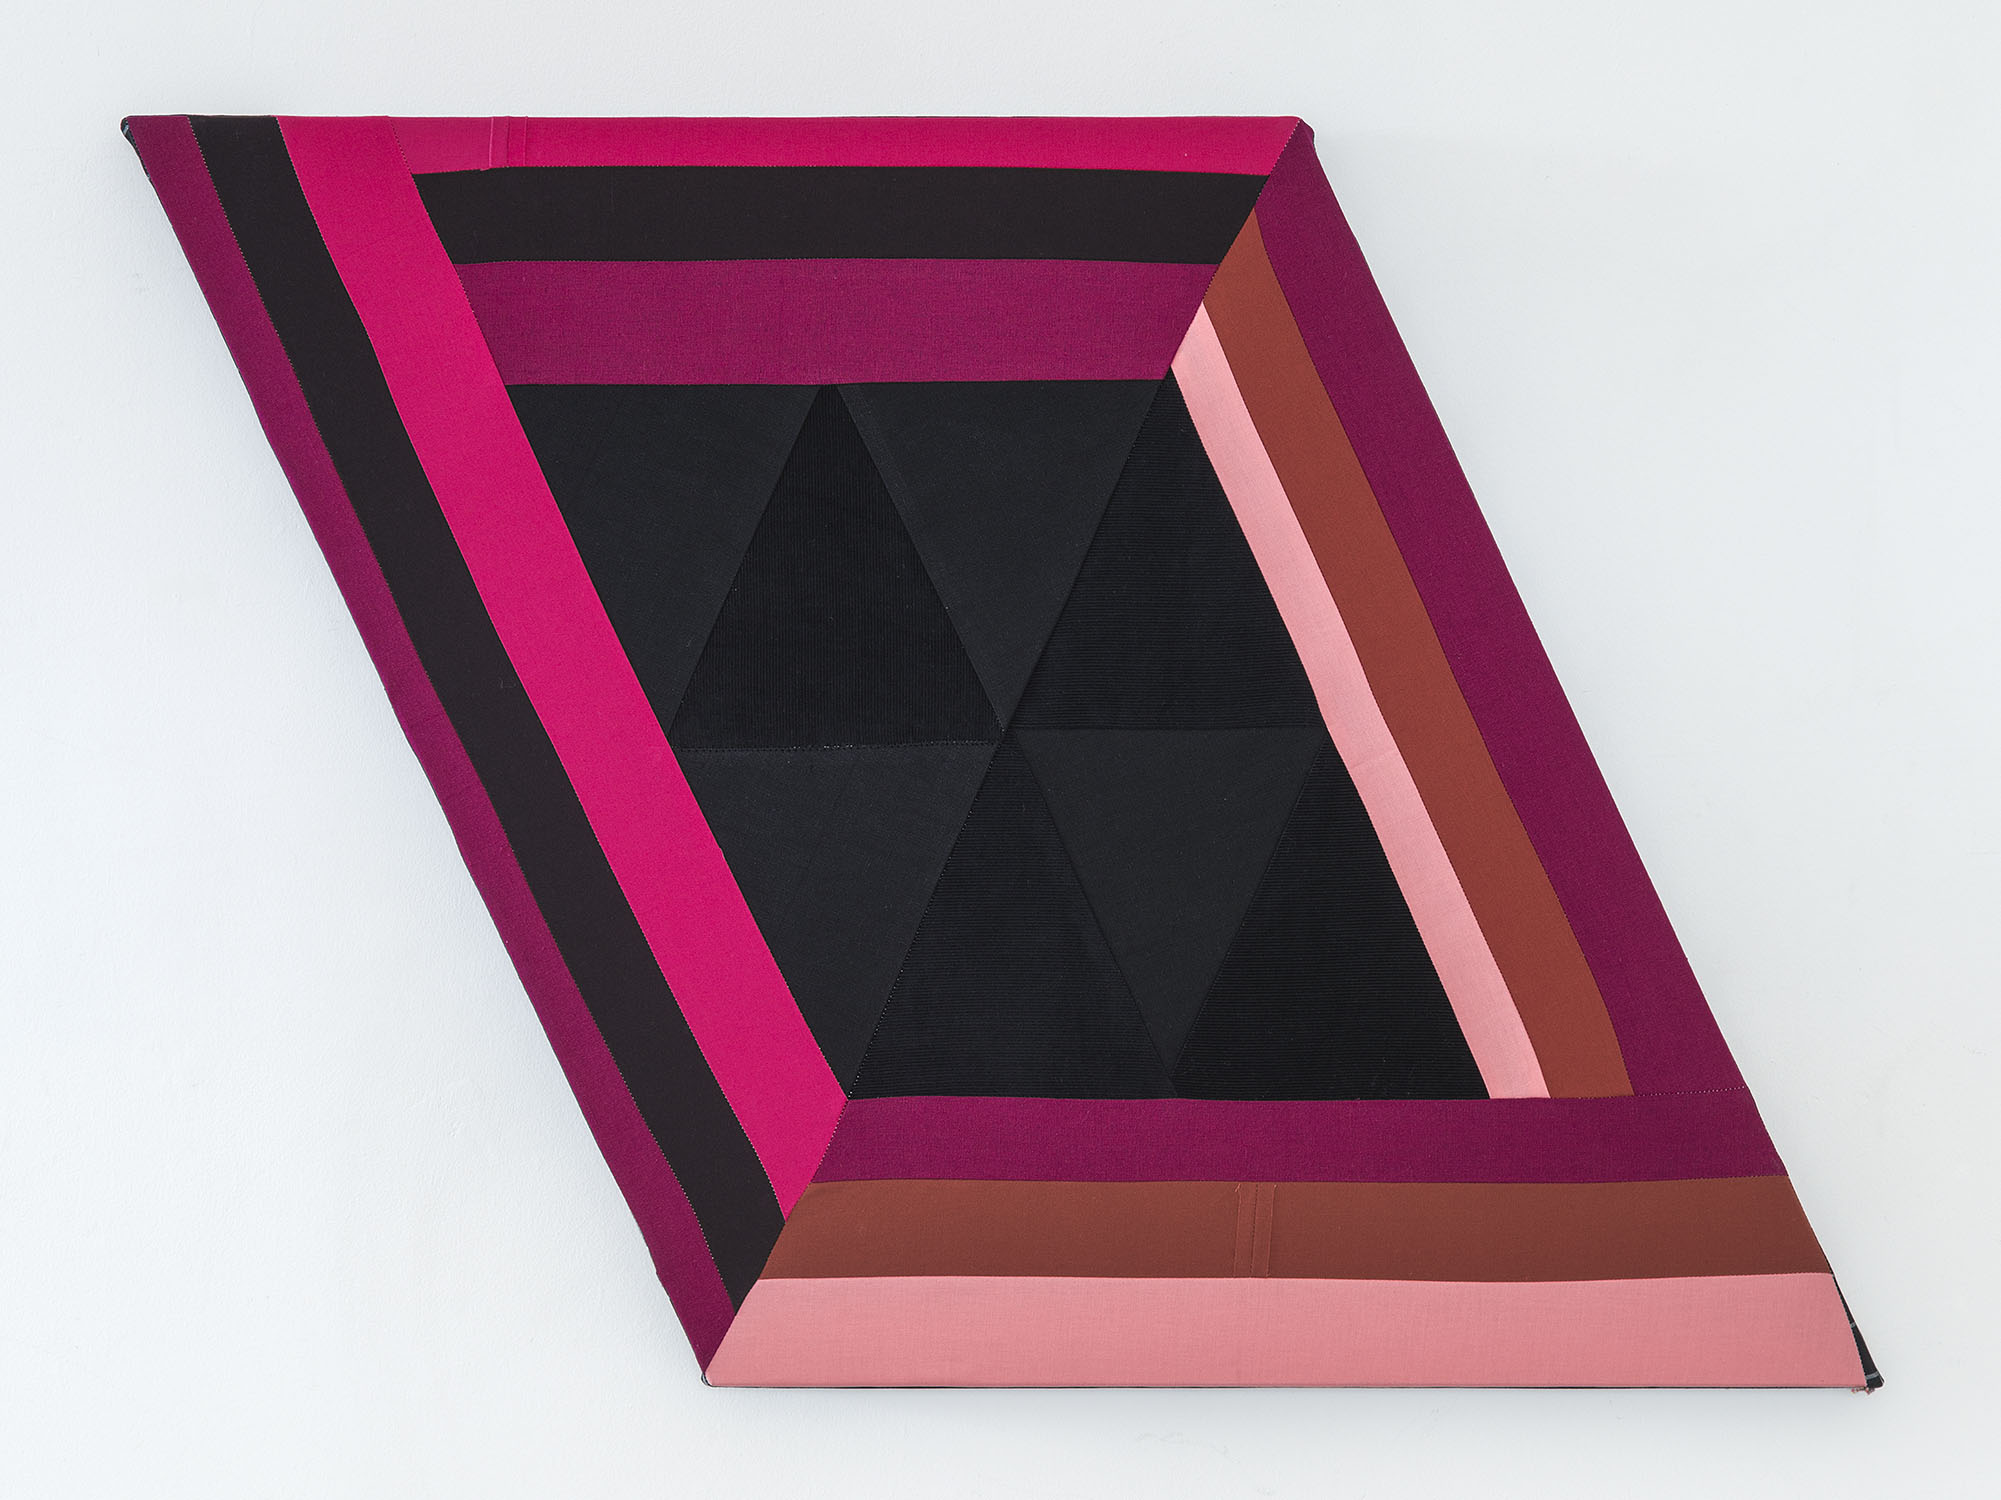 Night Cherry   ,  2019 Sewn cotton, corduroy and canvas on shaped support 25 x 34.5 inches overall (63.5 x 87.6 cm overall)